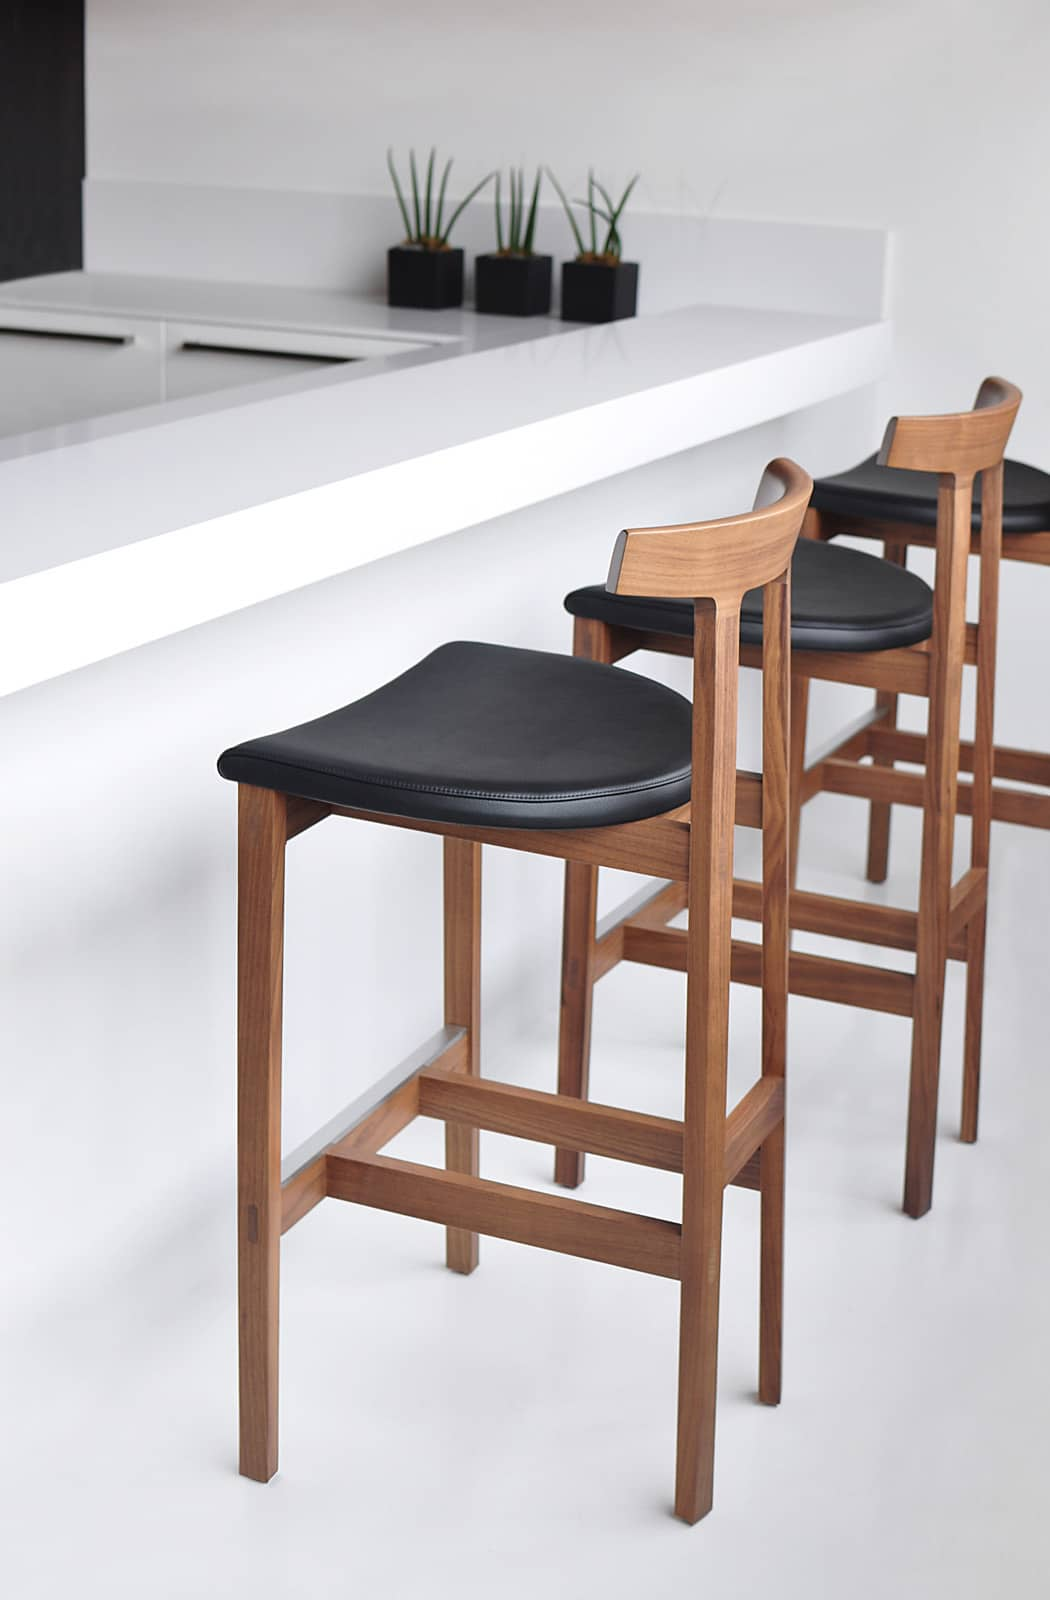 Bensen Torii Stool  0002 DSC 0996 fixed